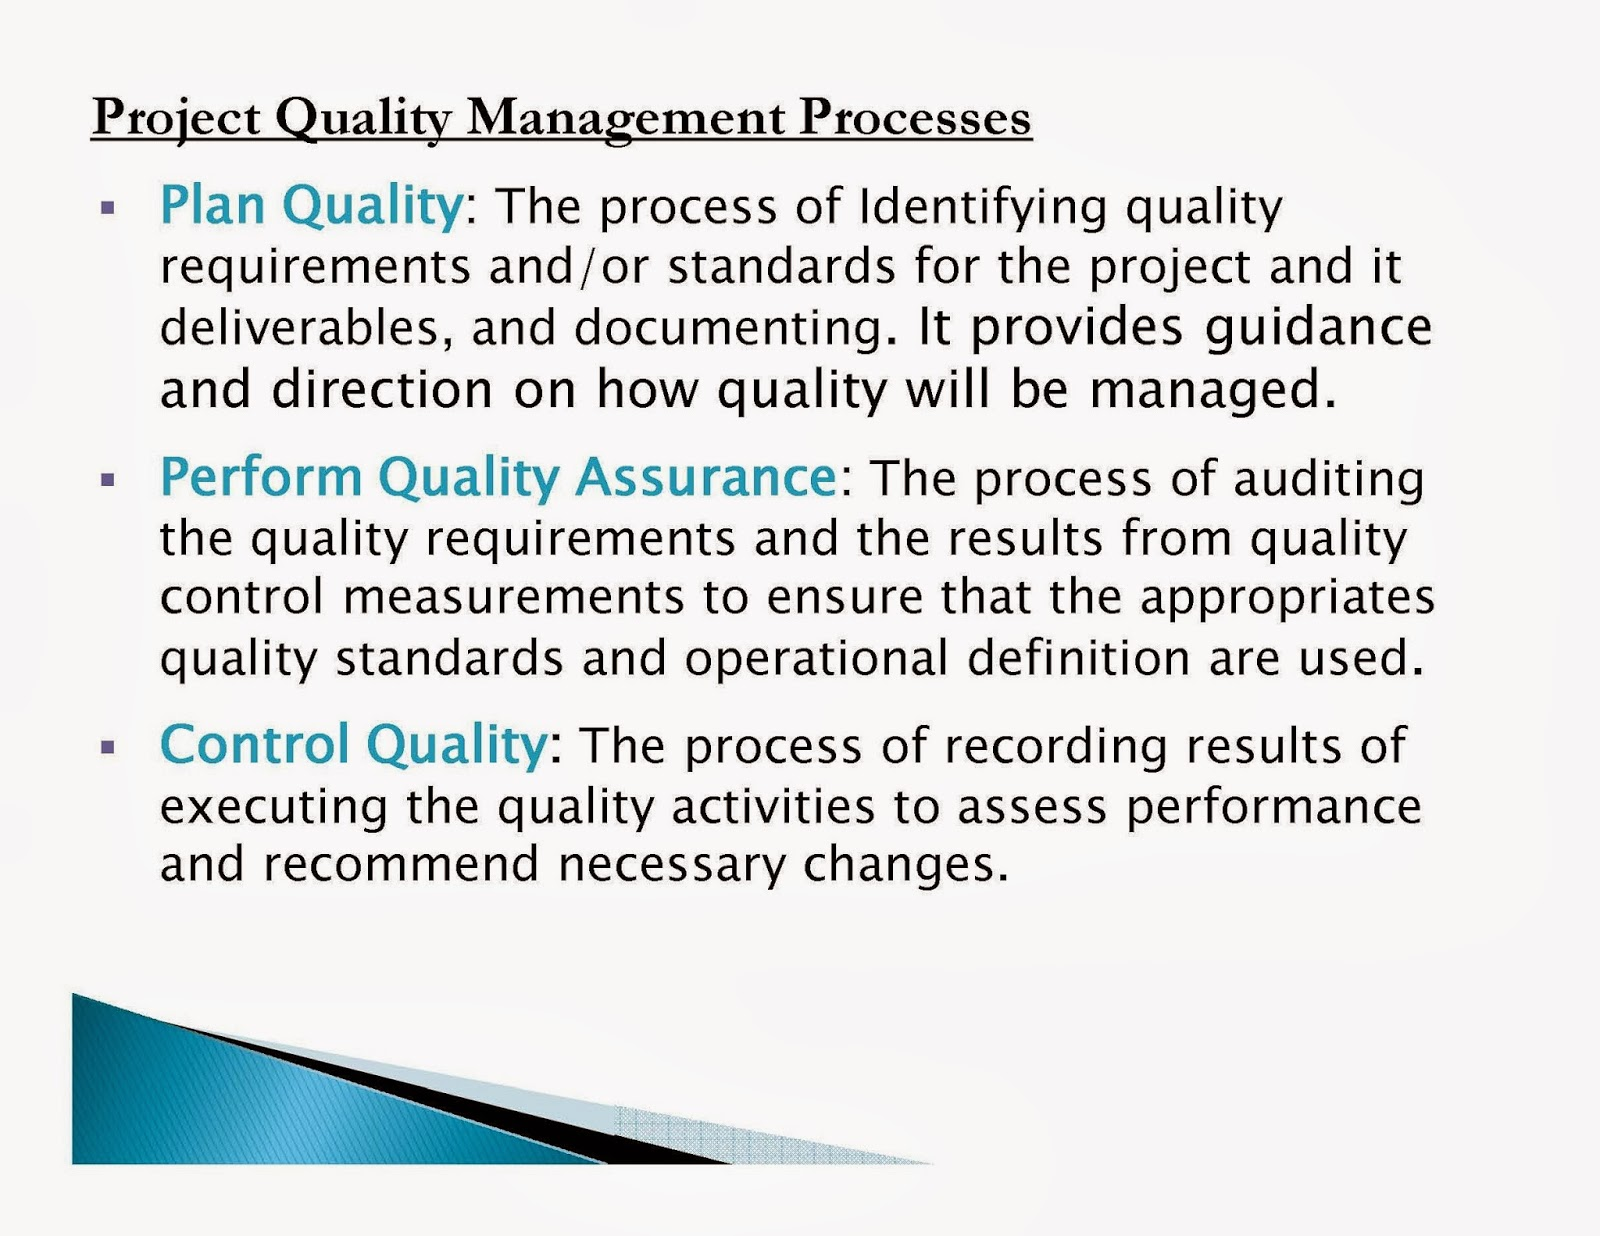 quality management project A quality management process is a method by which the quality of deliverables and processes is assured and controlled during the project this process entails completing a variety of review.